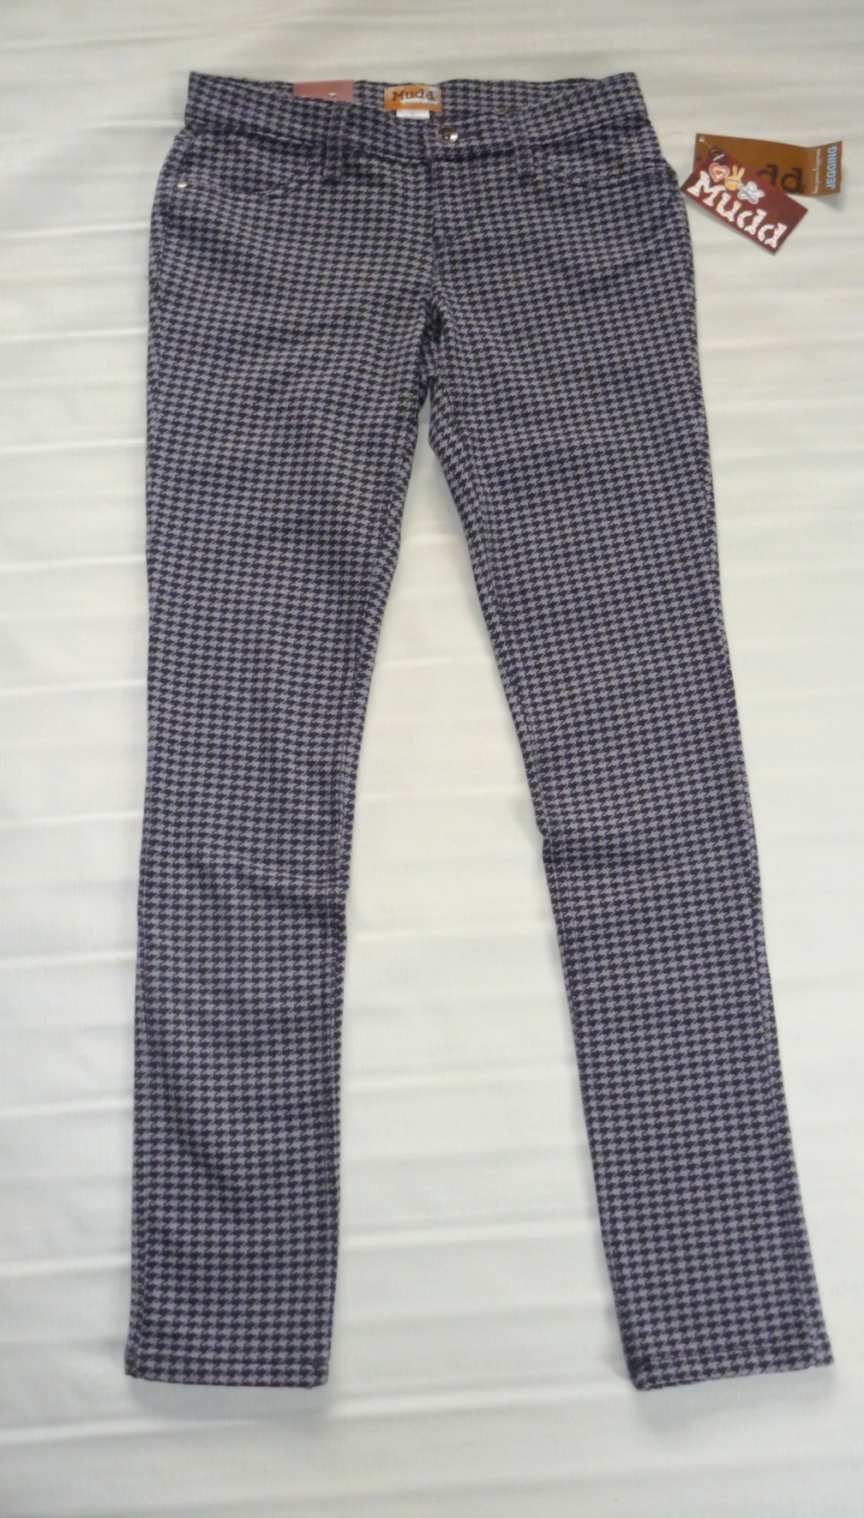 MUDD Skinny Stretch Jeggings-Houndstooth Legging Pant-Gray Black- 3 New $40 image 4